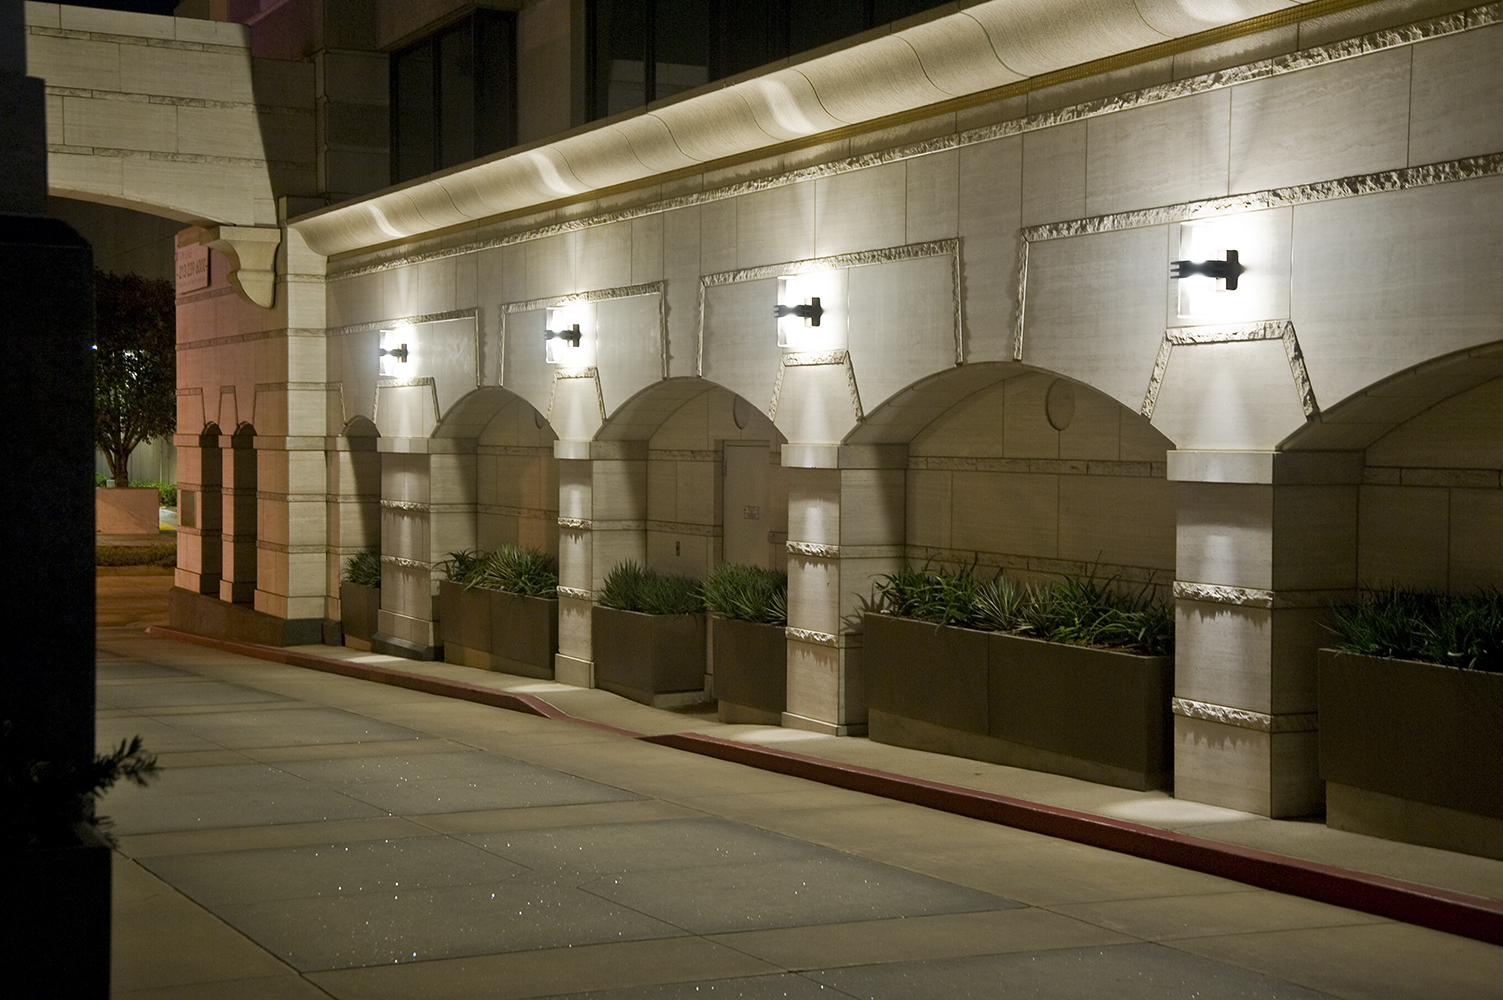 Pla outdoor light fixtures provide uplight and downlight on a classic arch structure along a city street at night.